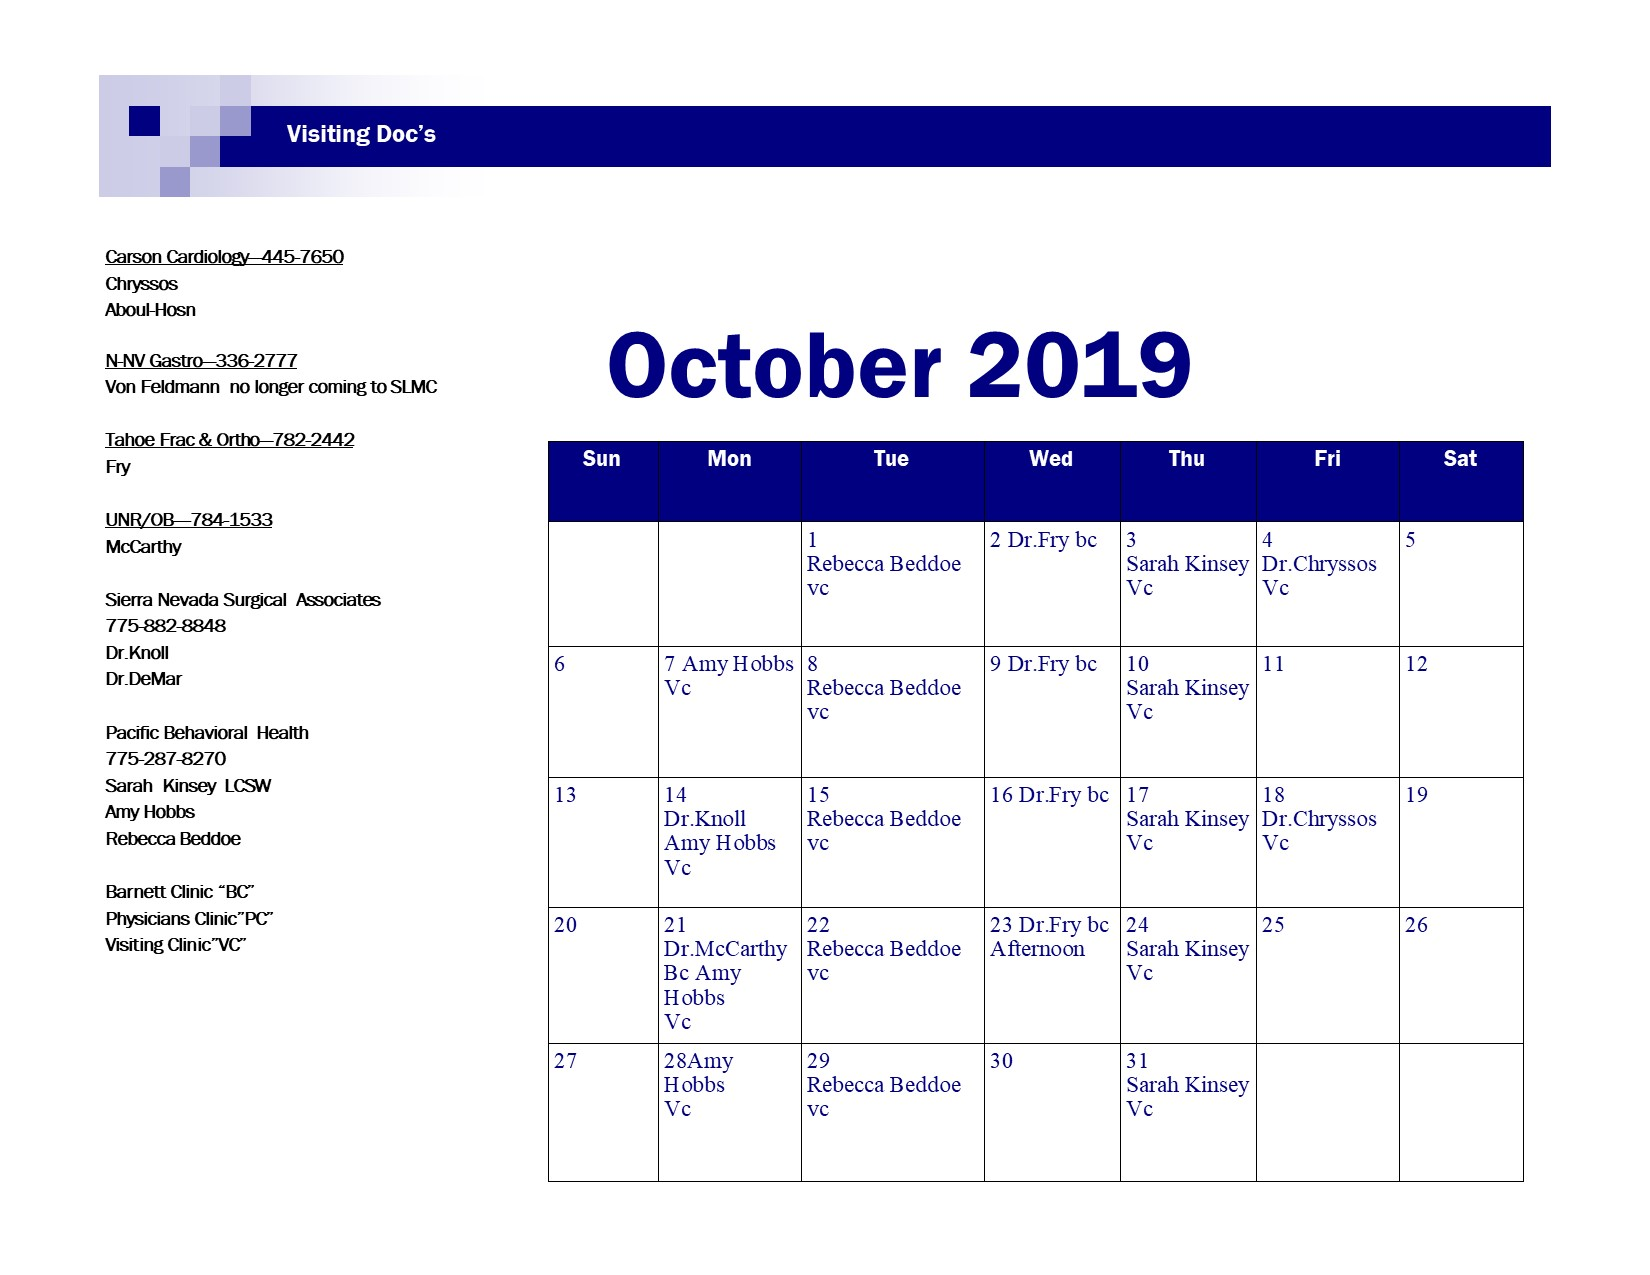 October 2019 Visiting Doc Schedule